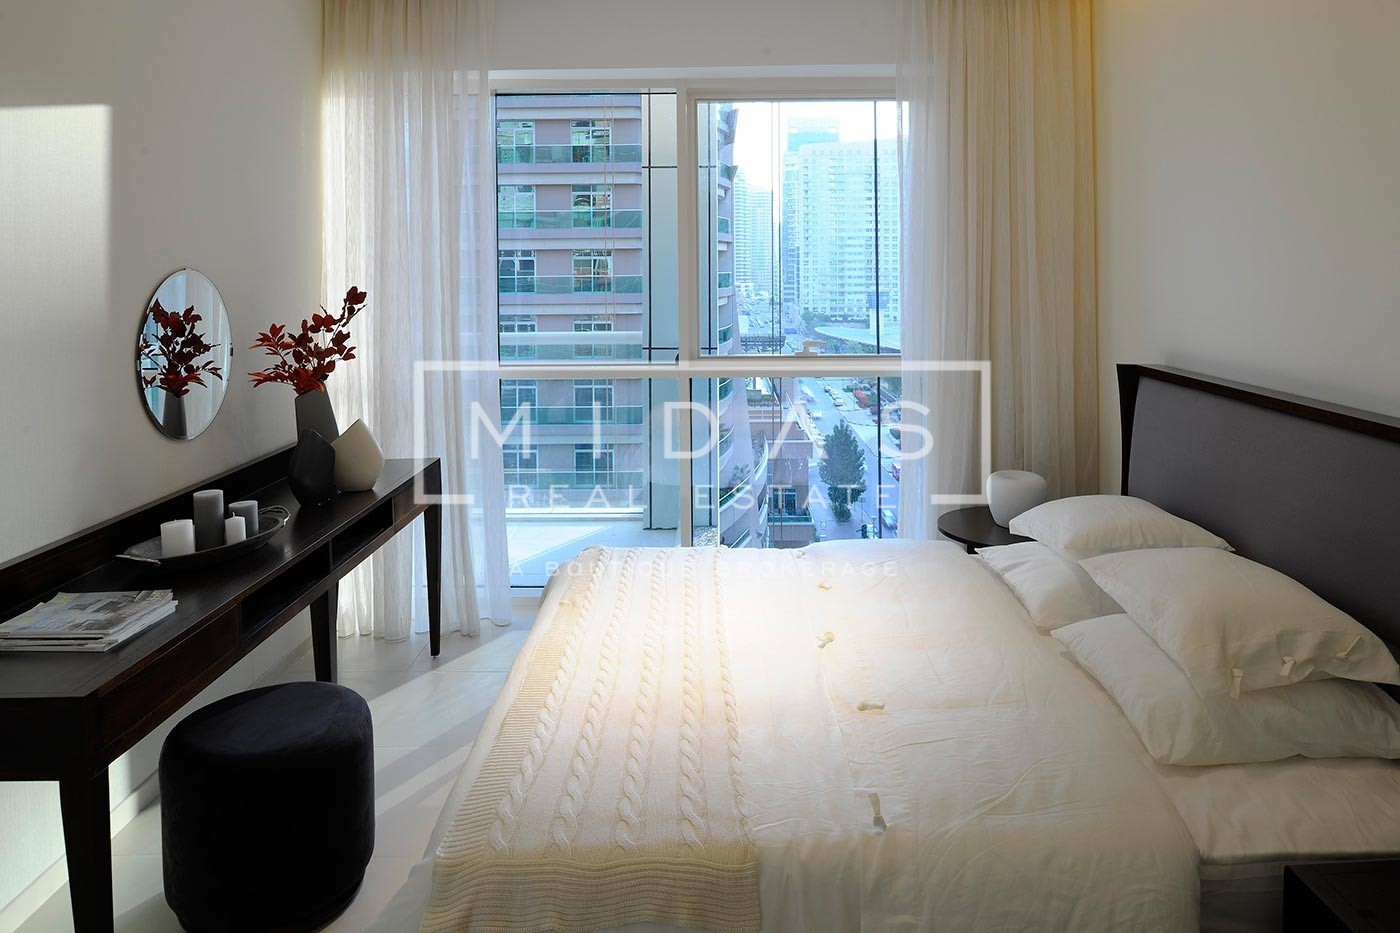 Spacious 1BR Apartment for Sale with Marina View